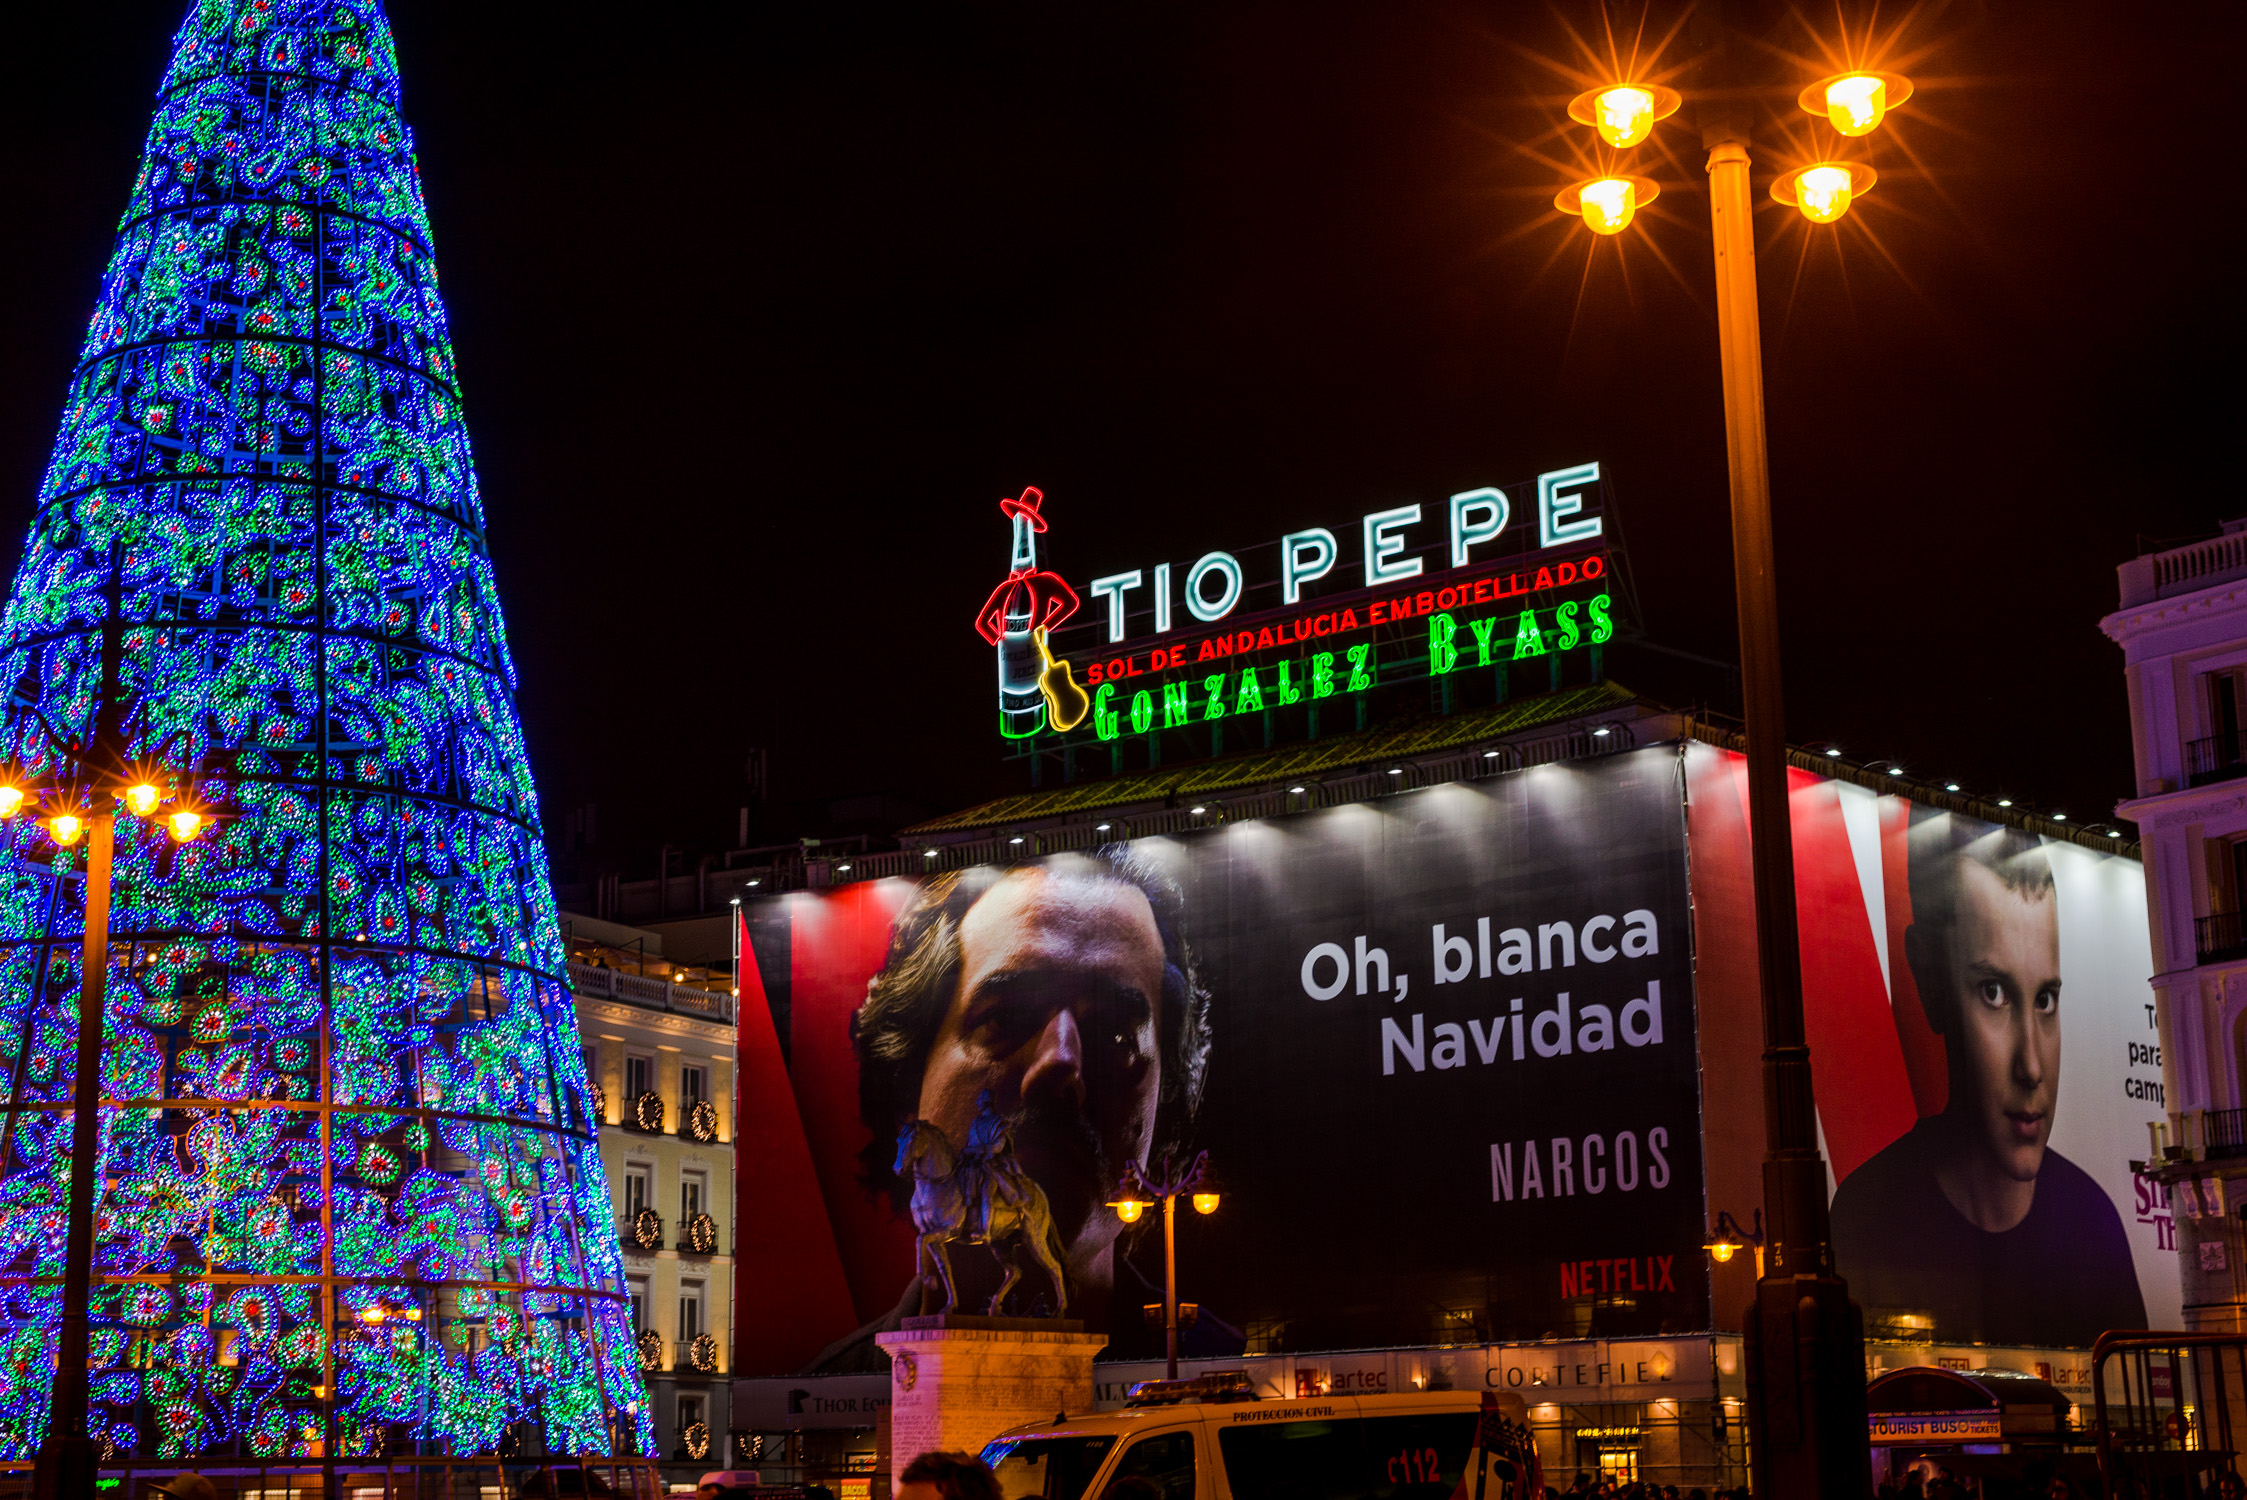 Tio Pepe sign in Puerto del Sol. As iconic as the Coke sign in Sydney's Kings Cross